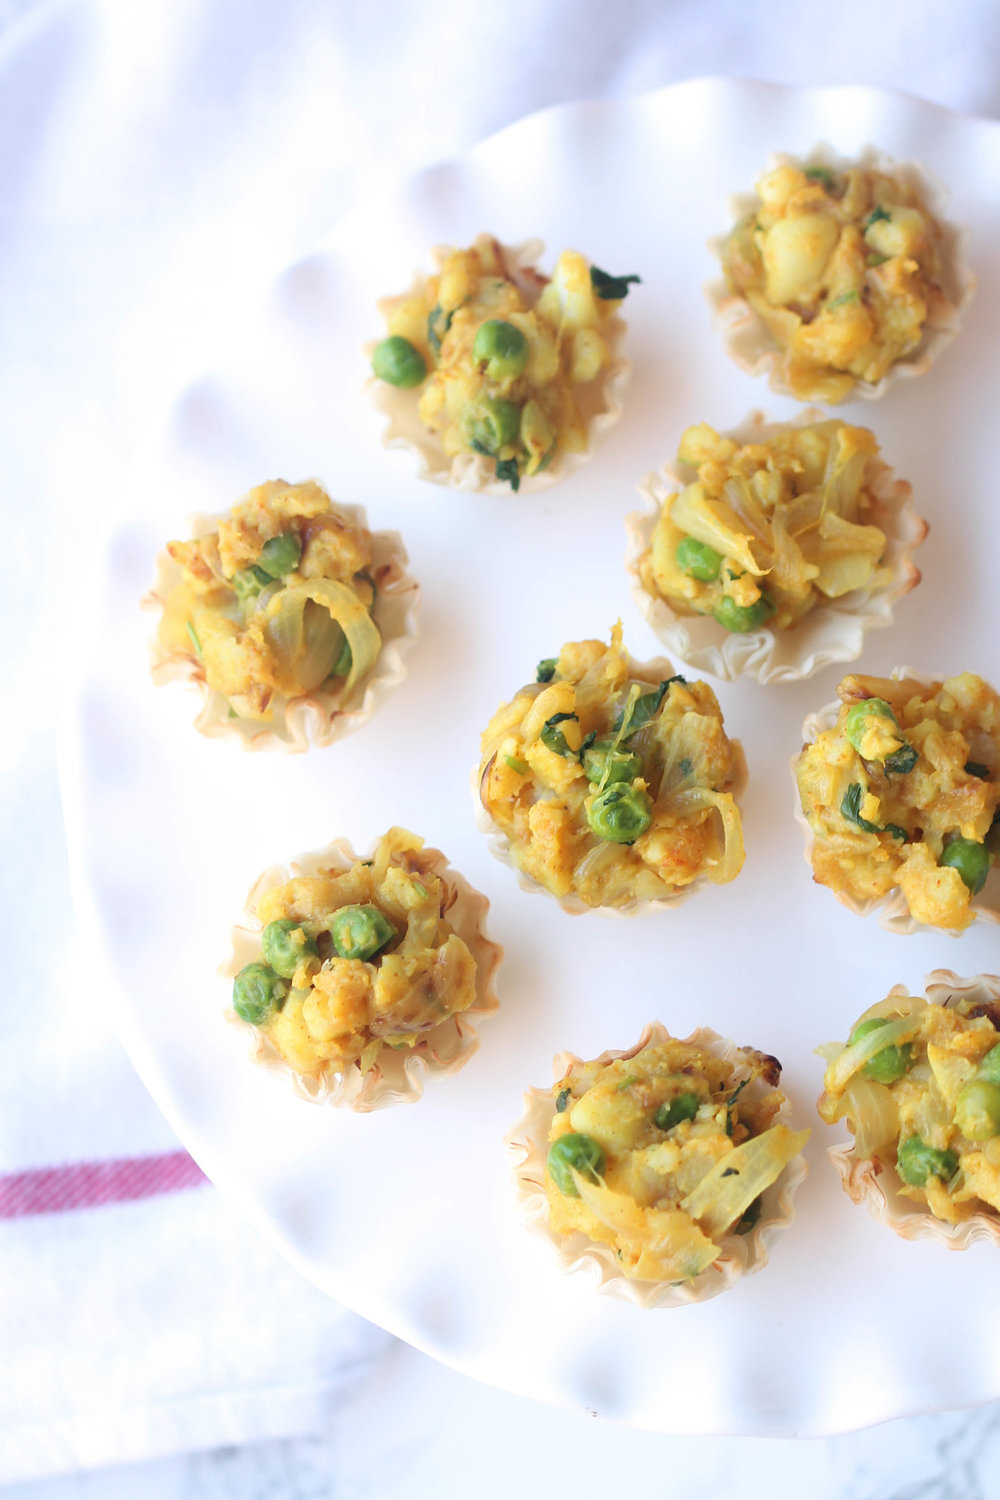 Samosa Bites - Go-to appetizers for parties and potlucks because they are super quick to put together + meet vegetarian & vegan lifestyle + everyone loves bite-sized food, no? Click here for the recipe!